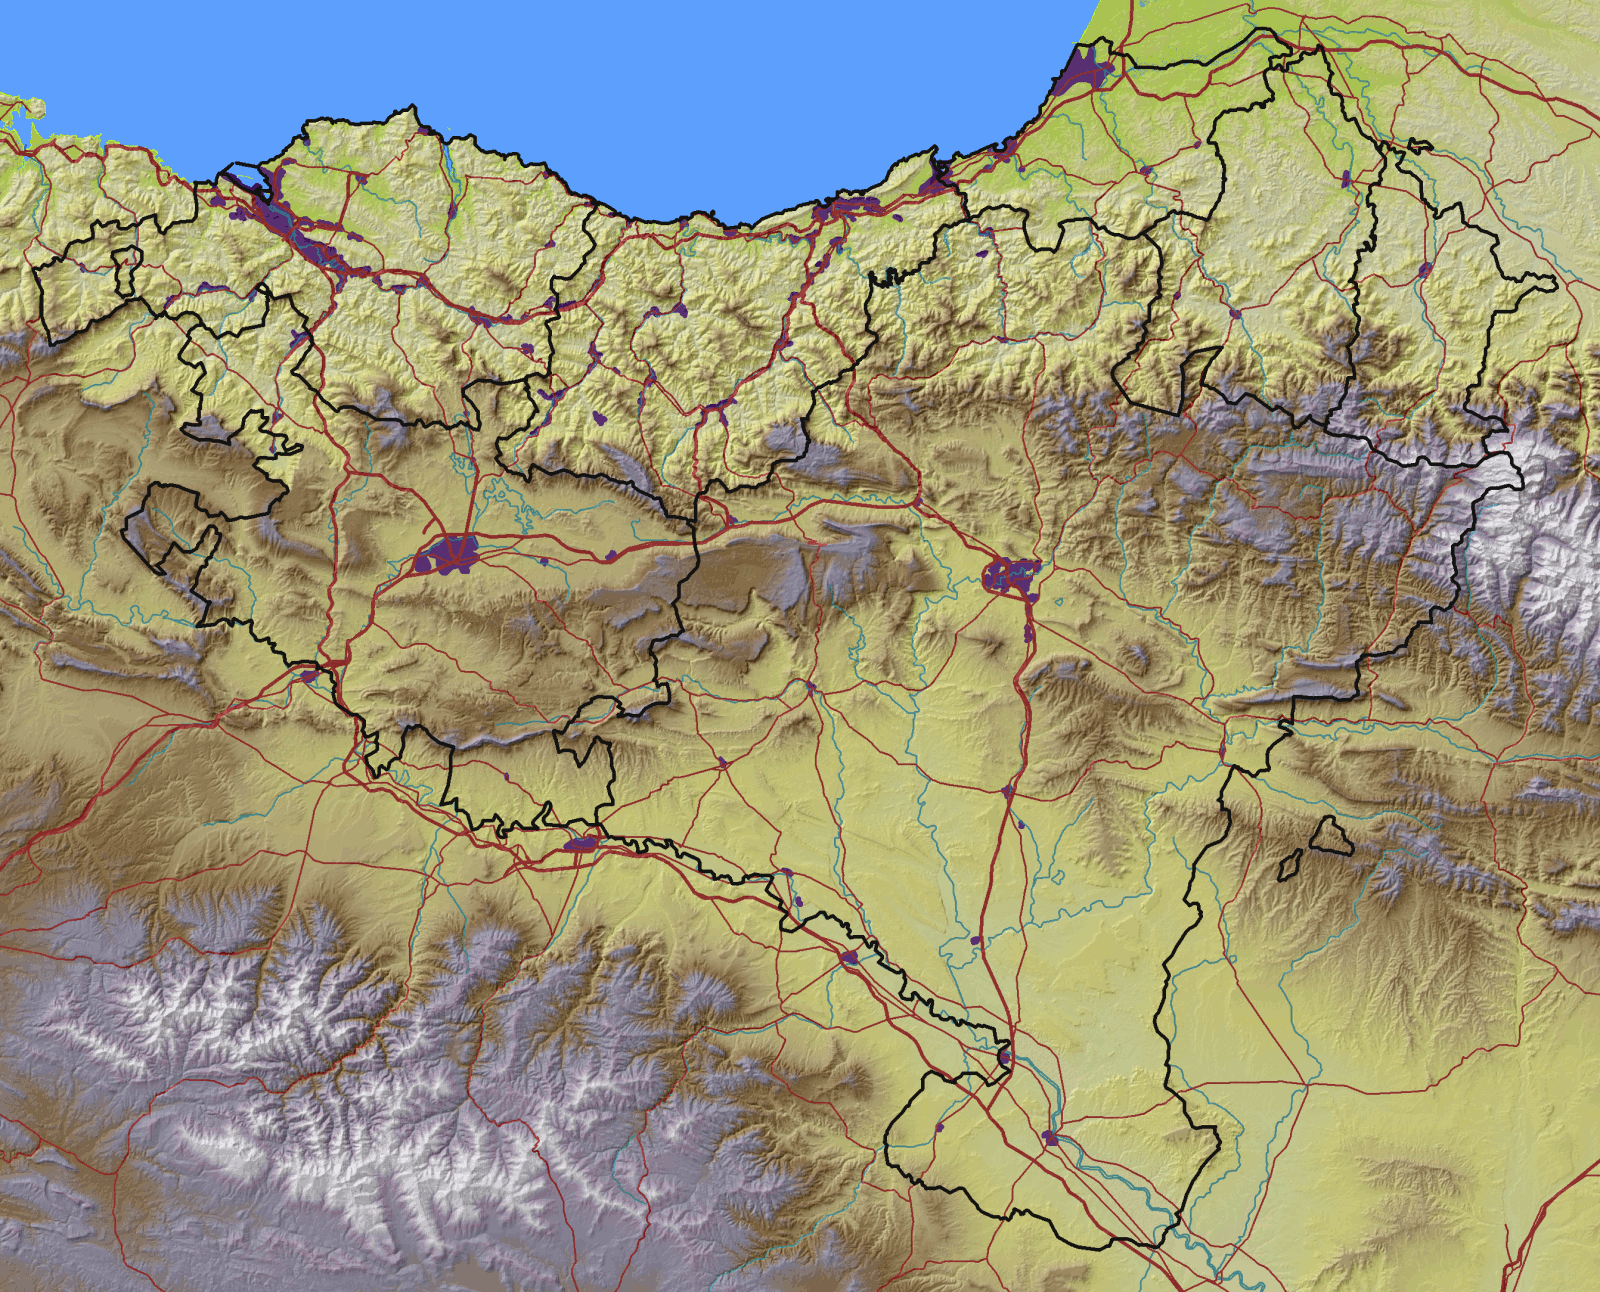 Atlas Of The Basque Country Wikimedia Commons - Basque centers us map